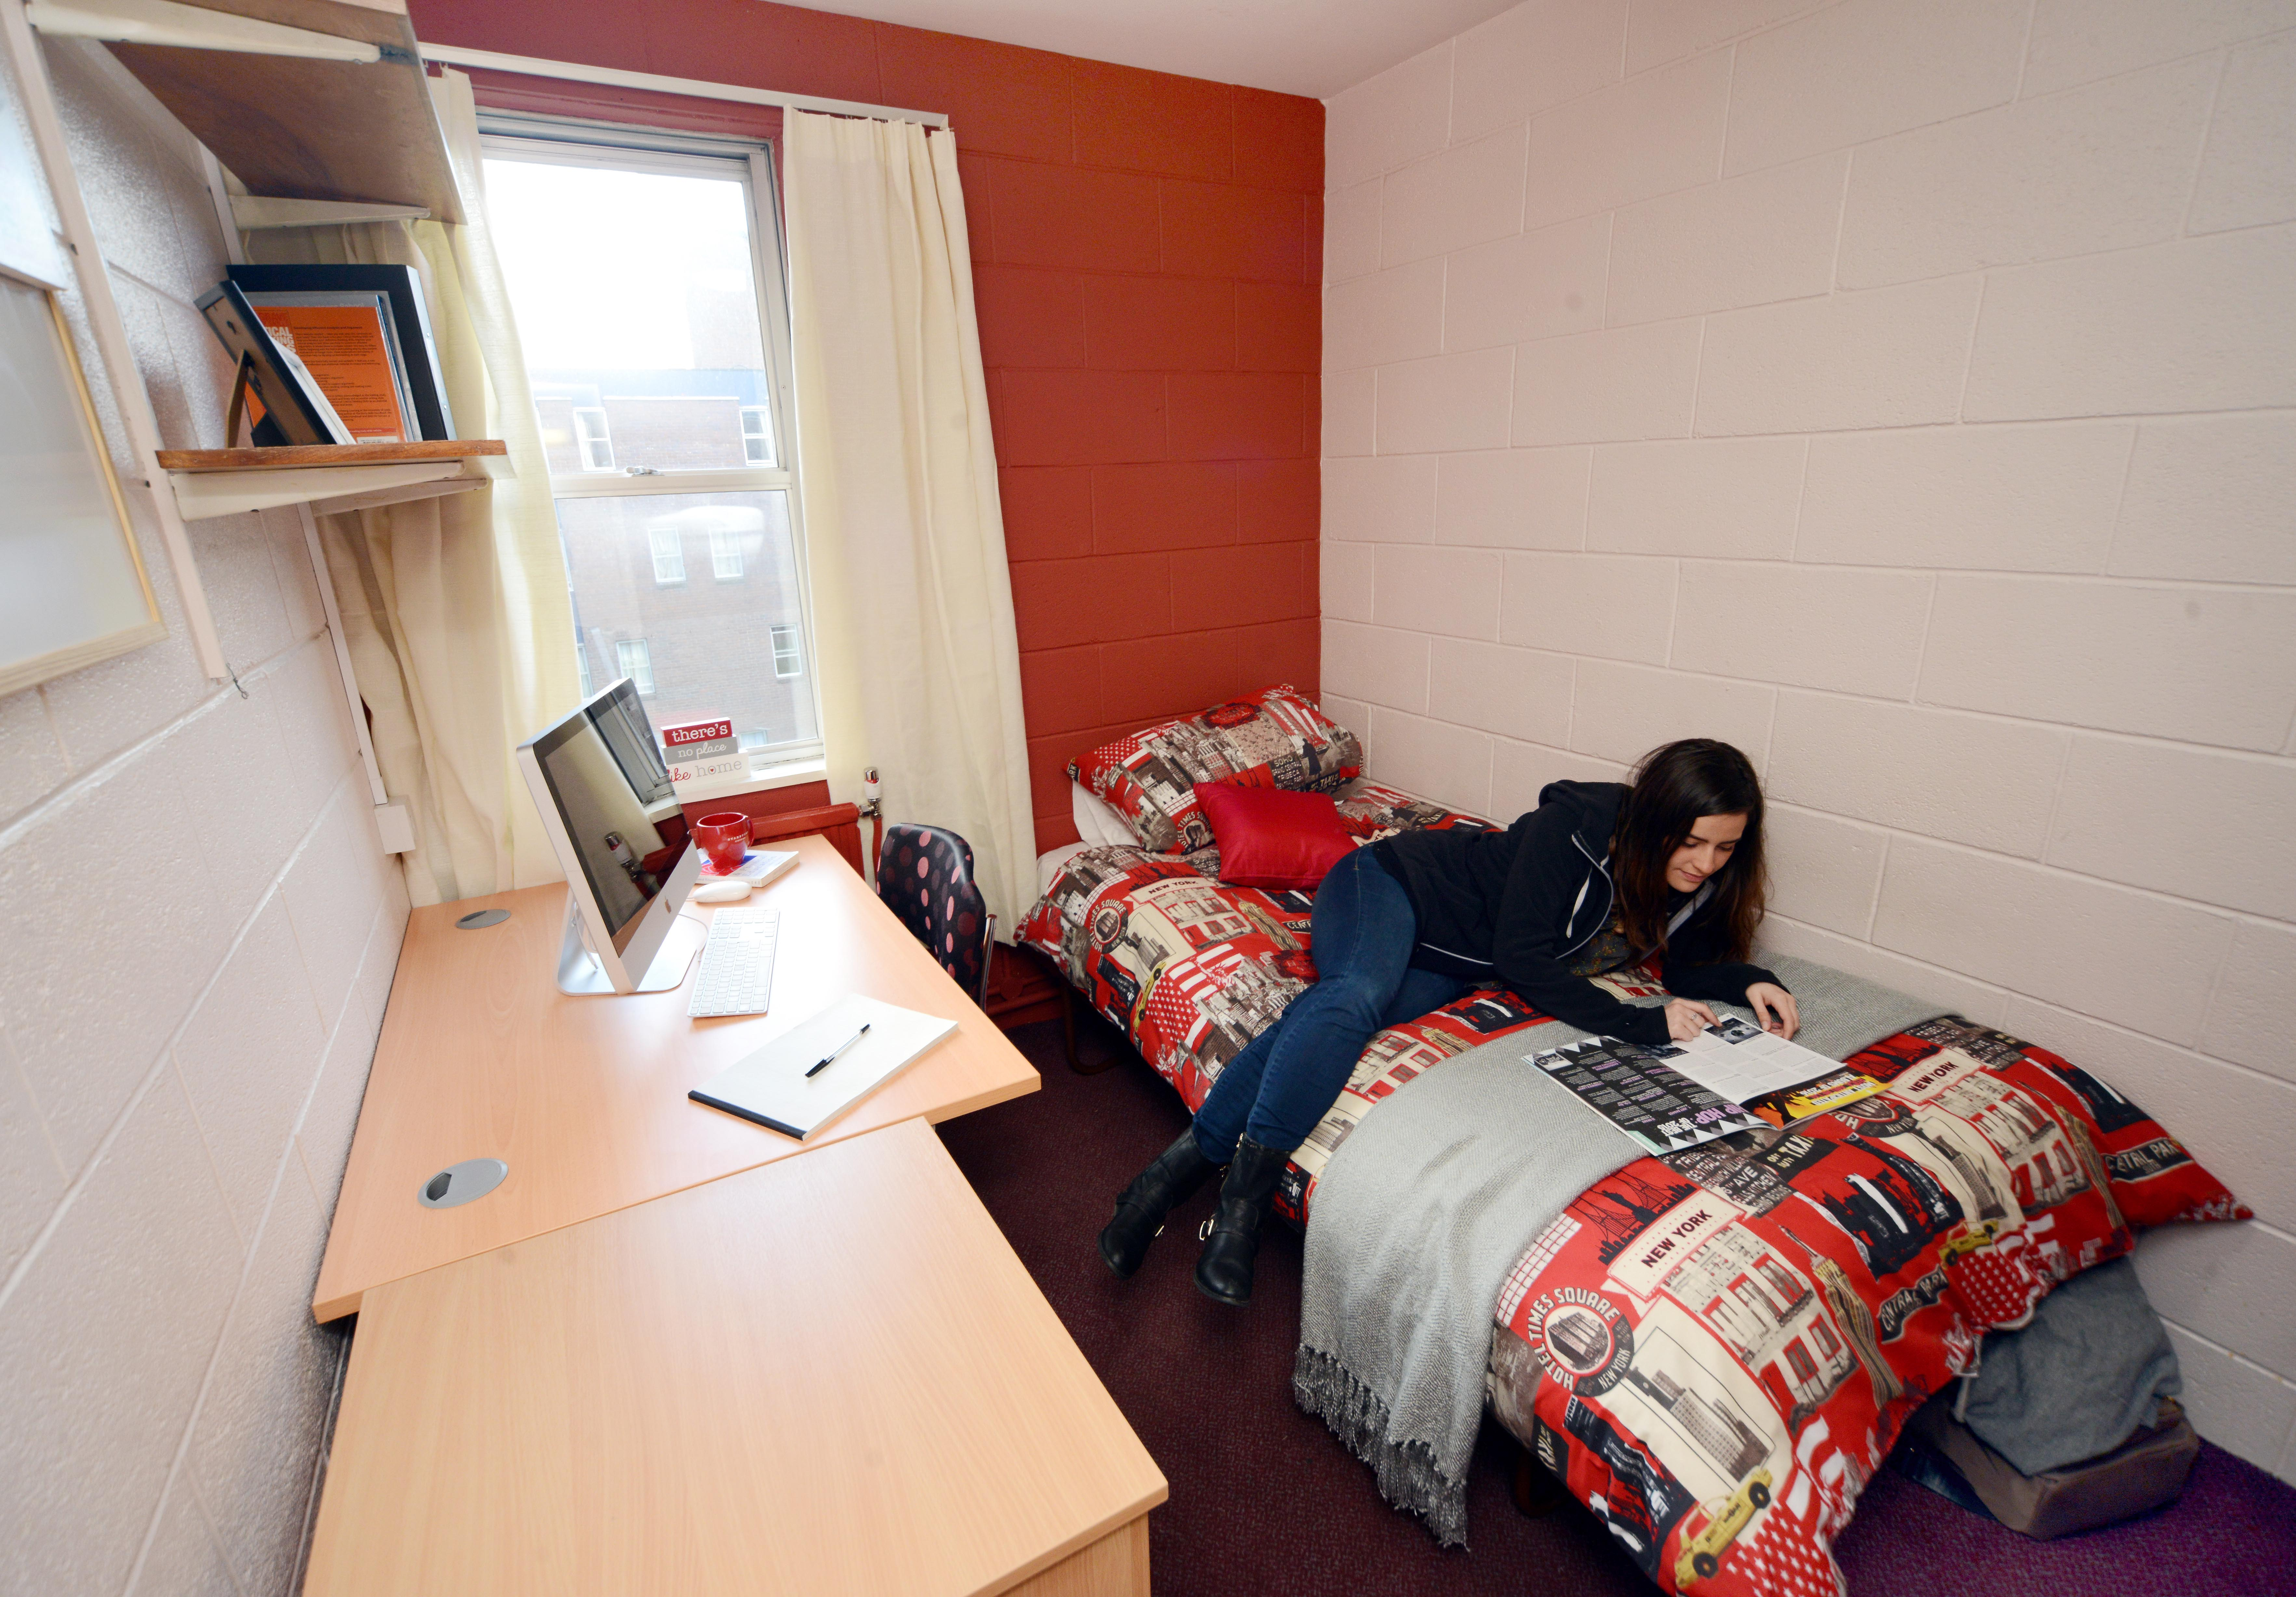 lovaine halls student accommodation in newcastle upon tyne. Black Bedroom Furniture Sets. Home Design Ideas